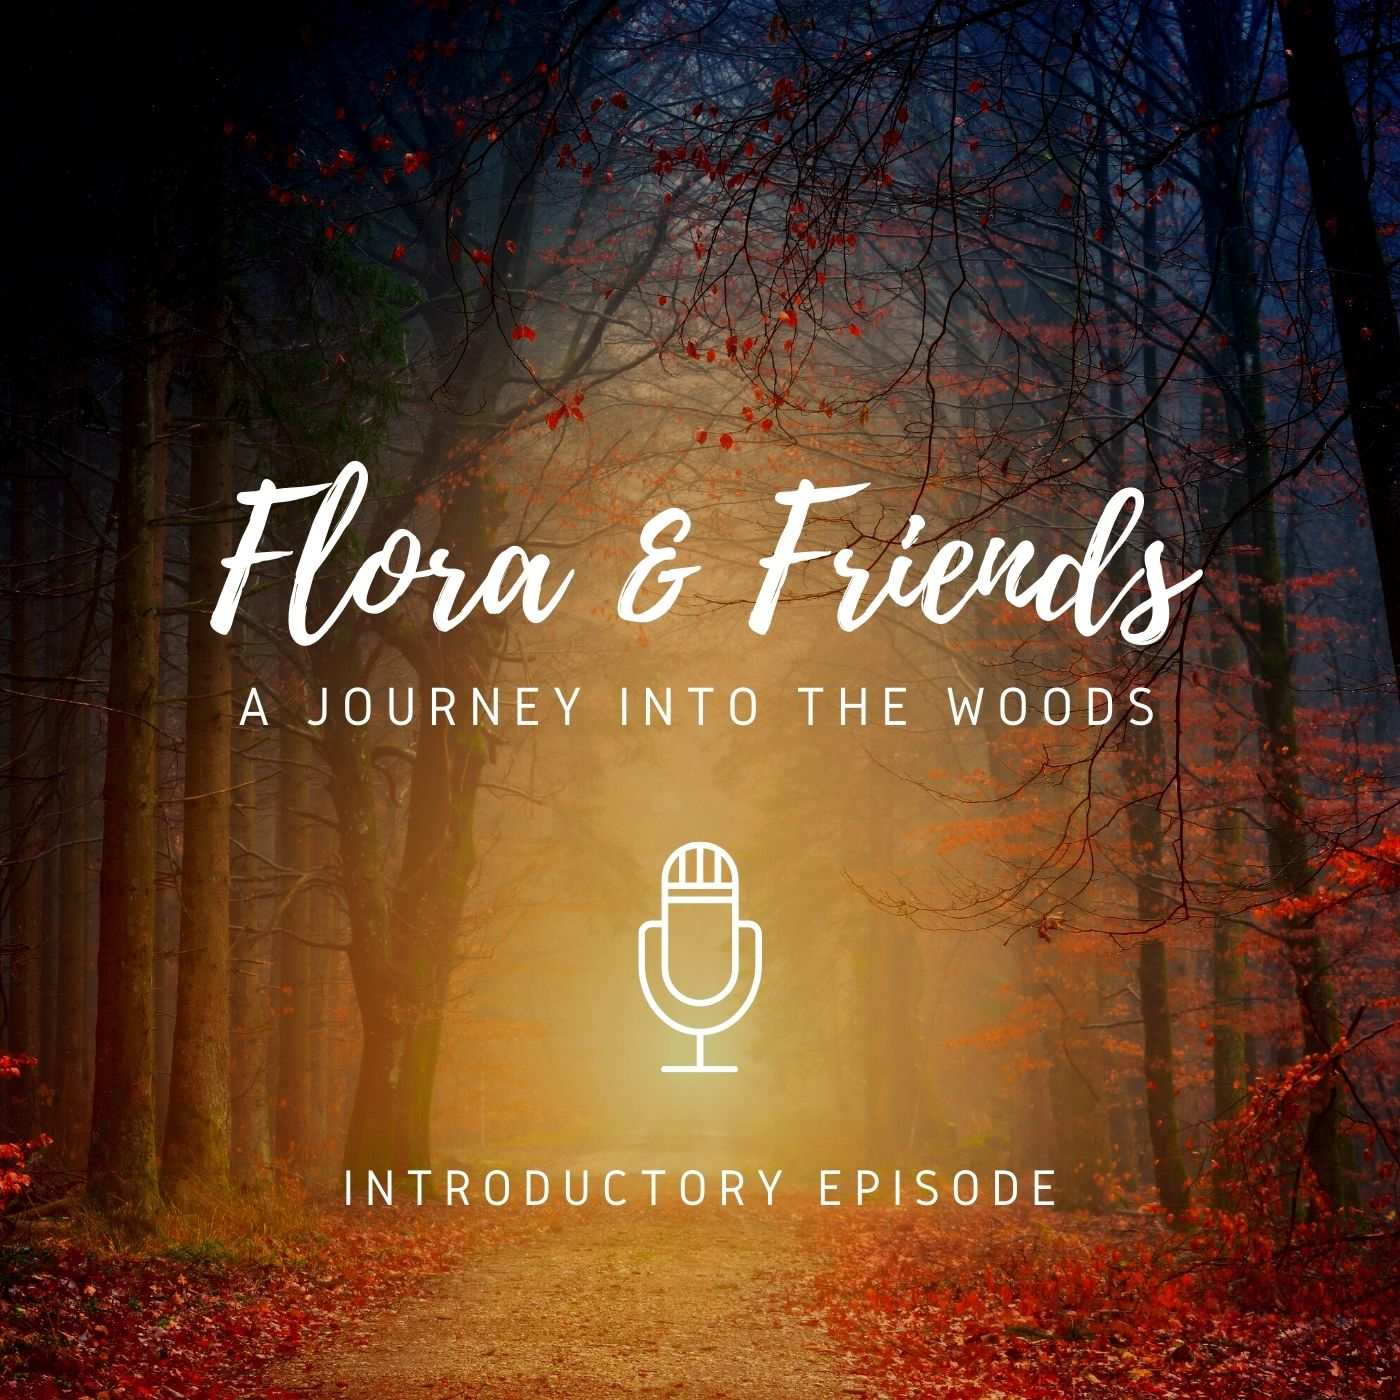 New podcast series – A journey into the woods